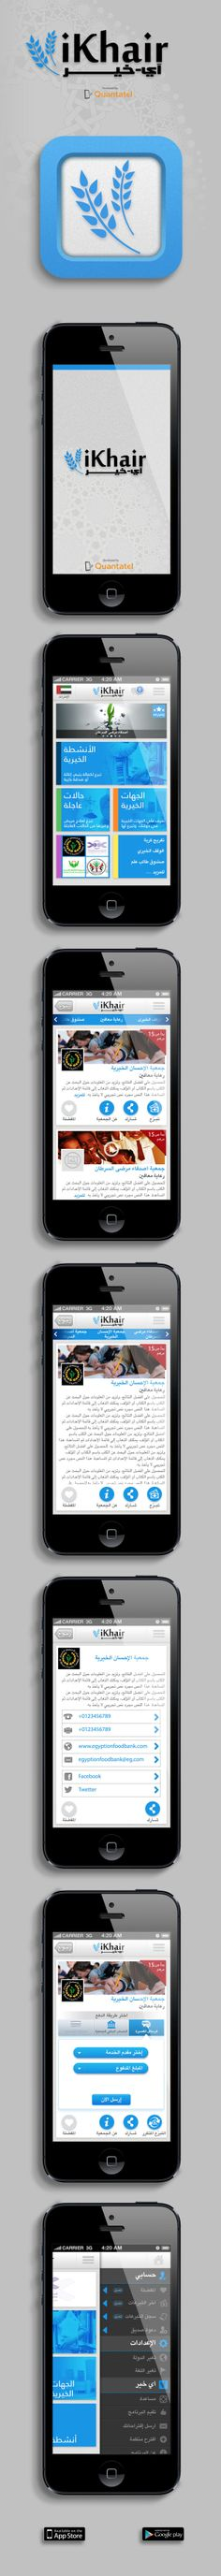 iKhair App for iPhone, Android